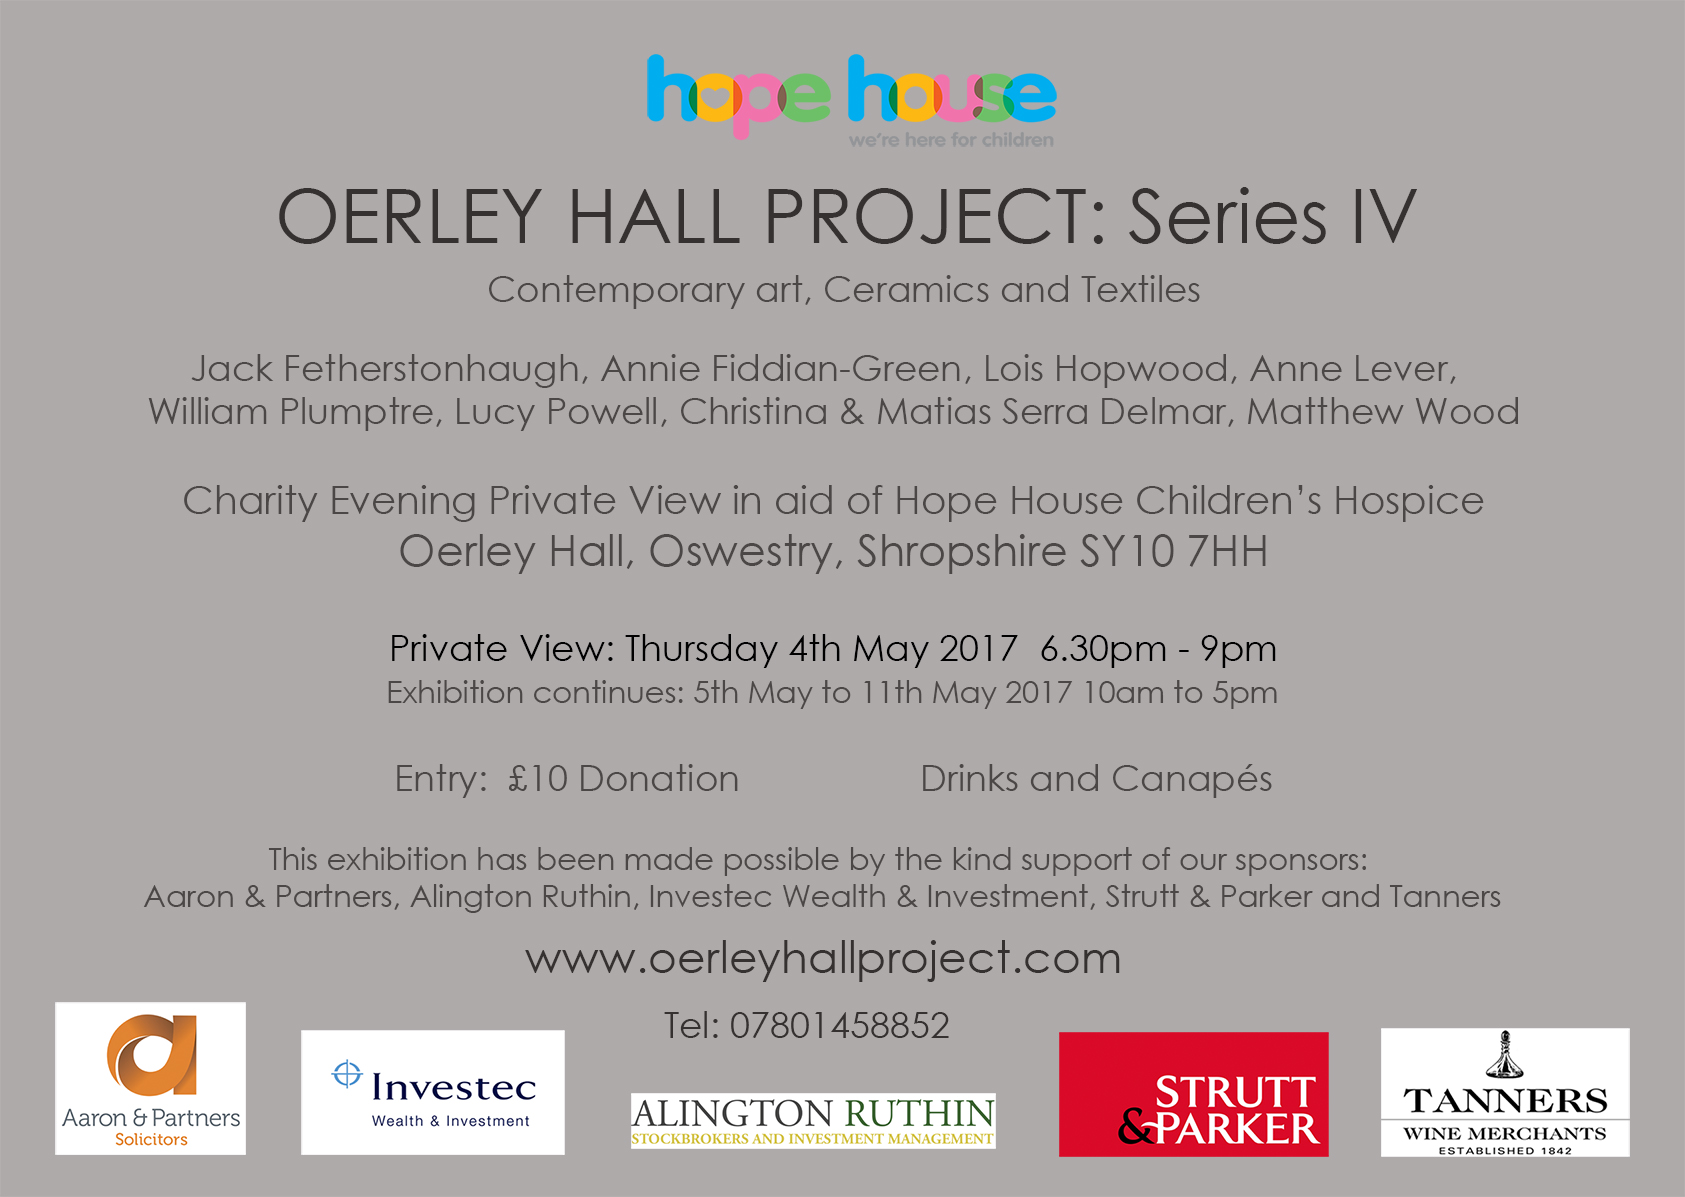 Oerley Hall Project: Series IV Invite Card